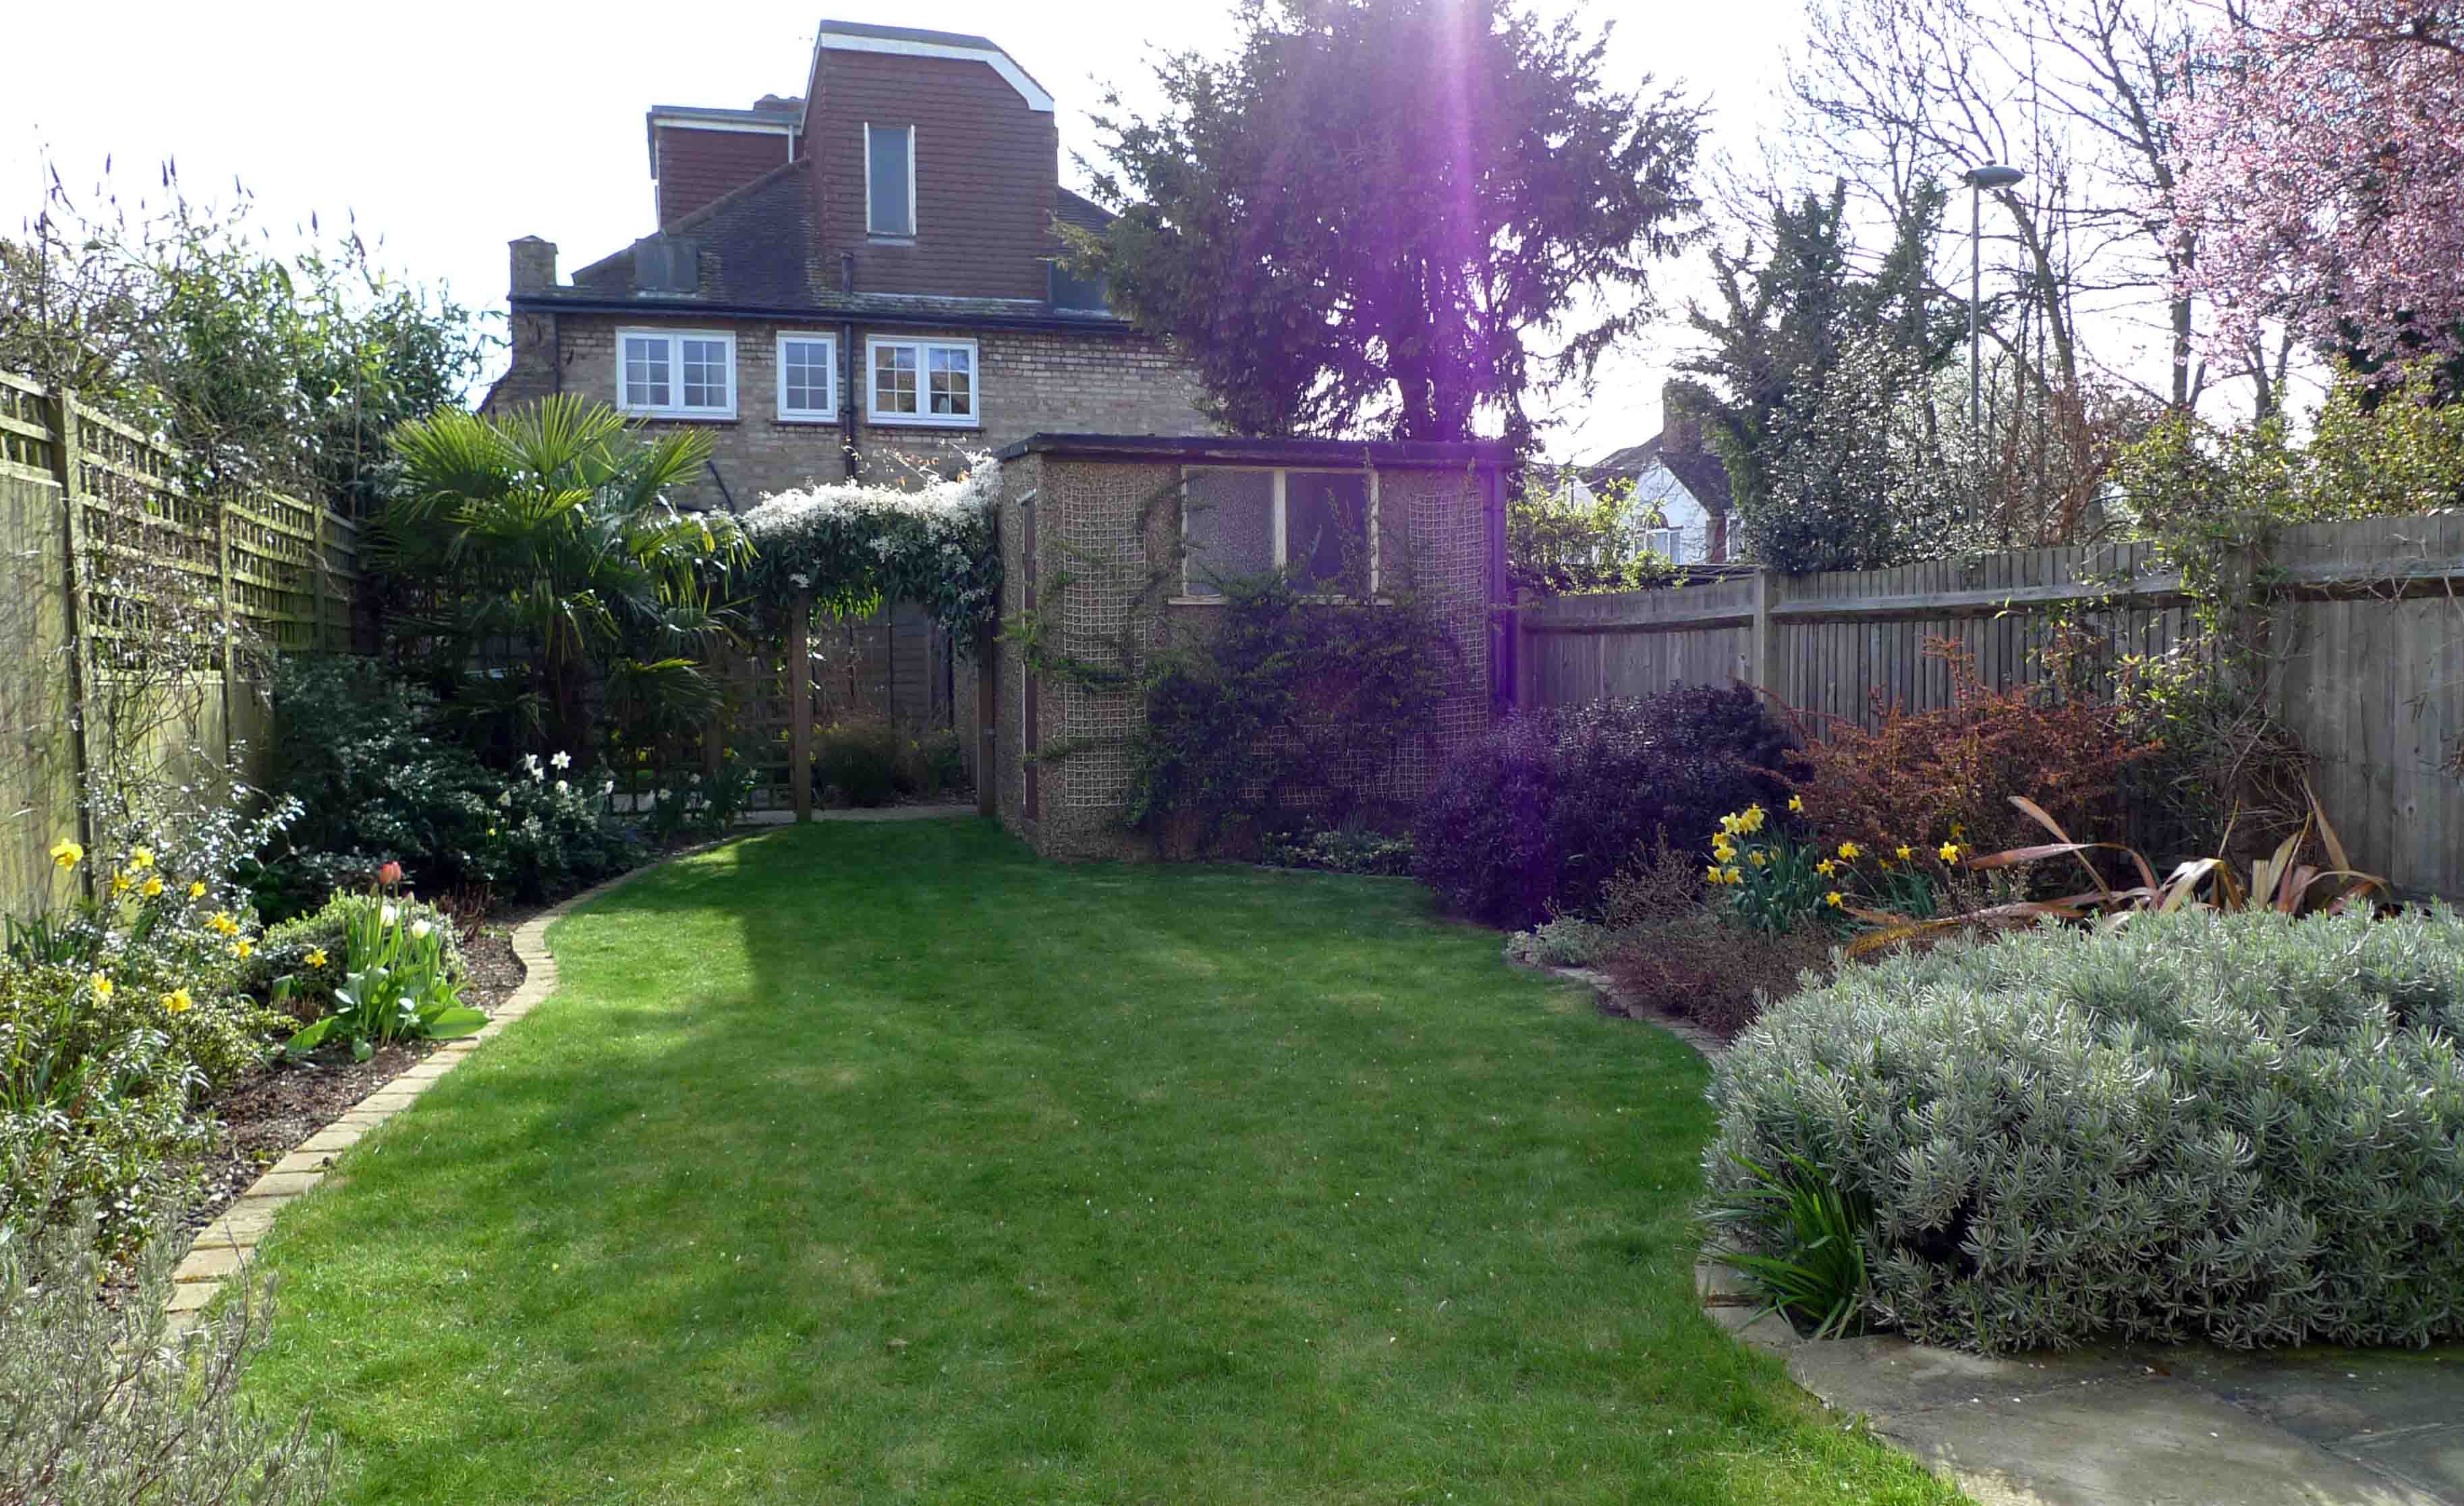 What to do with a long, narrow back garden | Home Garden ... on Low Maintenance Back Garden Ideas id=48470